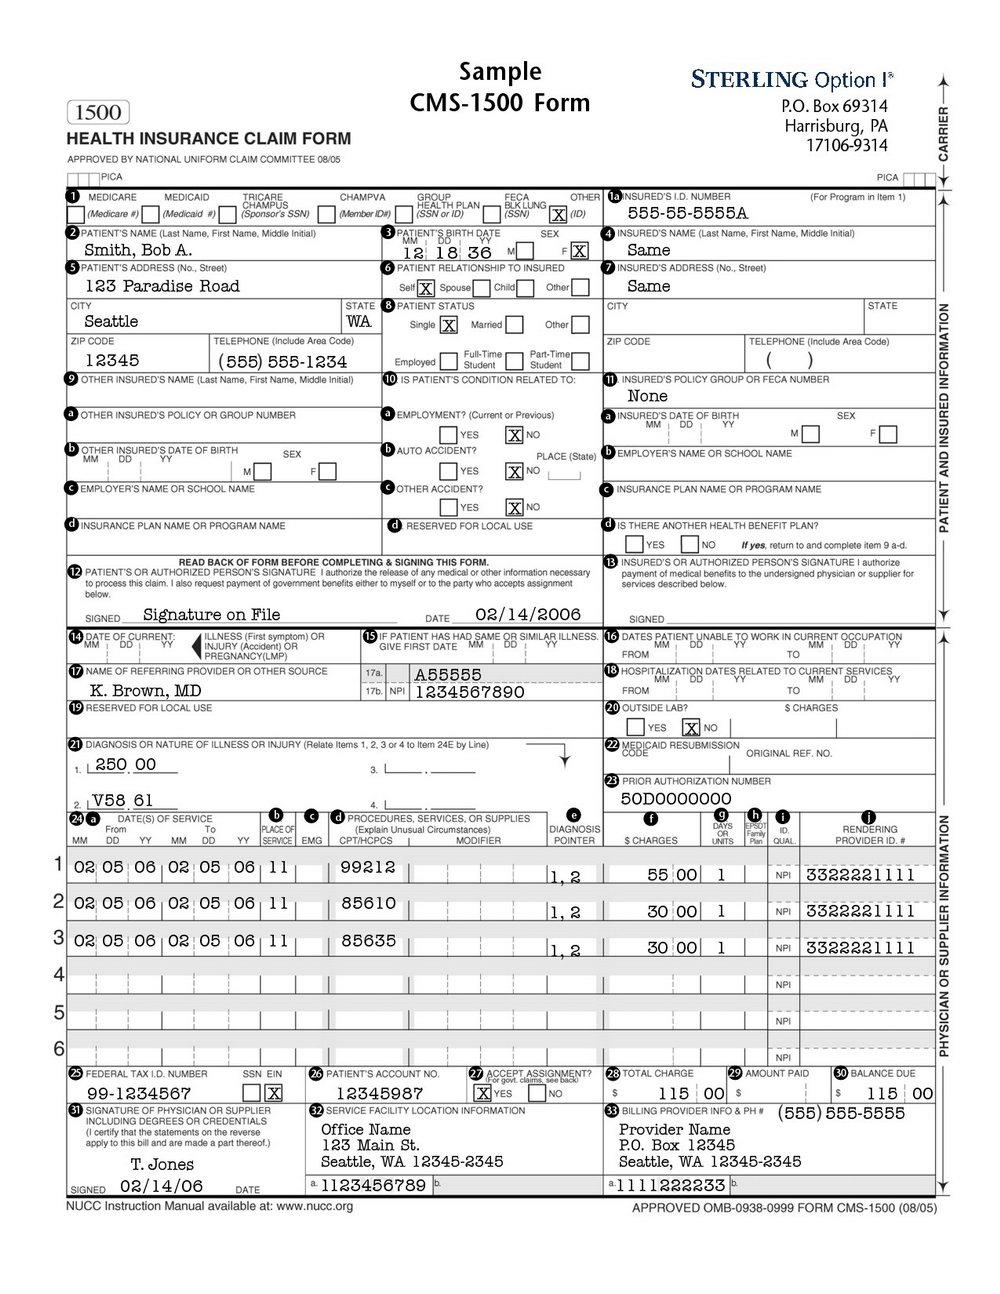 graphic regarding Cms 1500 Form Printable known as Fresh new Cms 1500 Type - Sorts #MTA1NjU Resume Illustrations